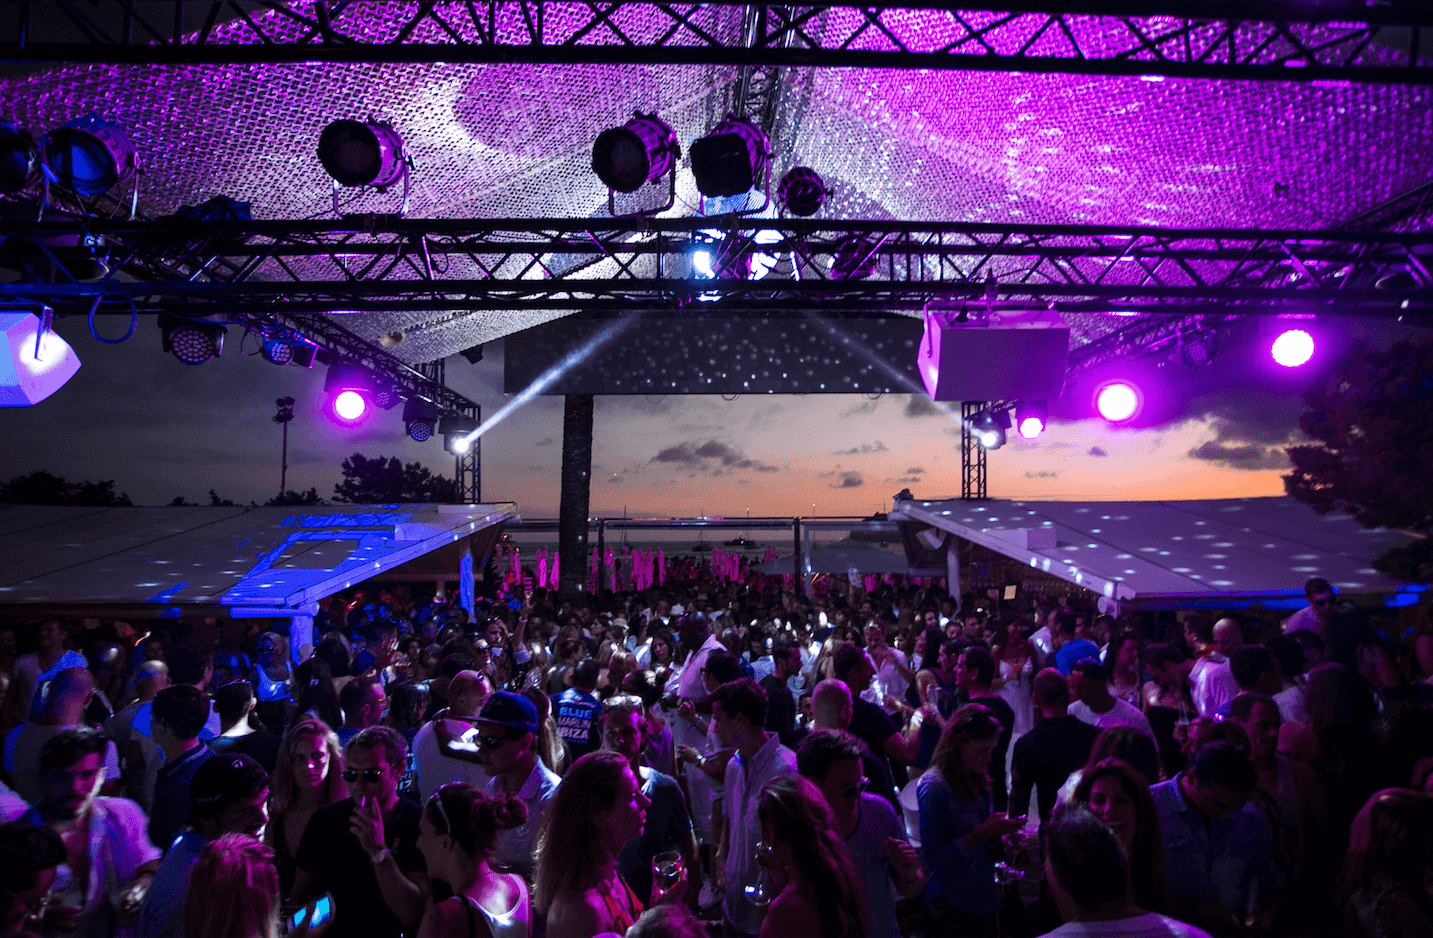 https://www.white-ibiza.com/wp-content/uploads/2020/03/blue-marlin-ibiza-2020-01.png